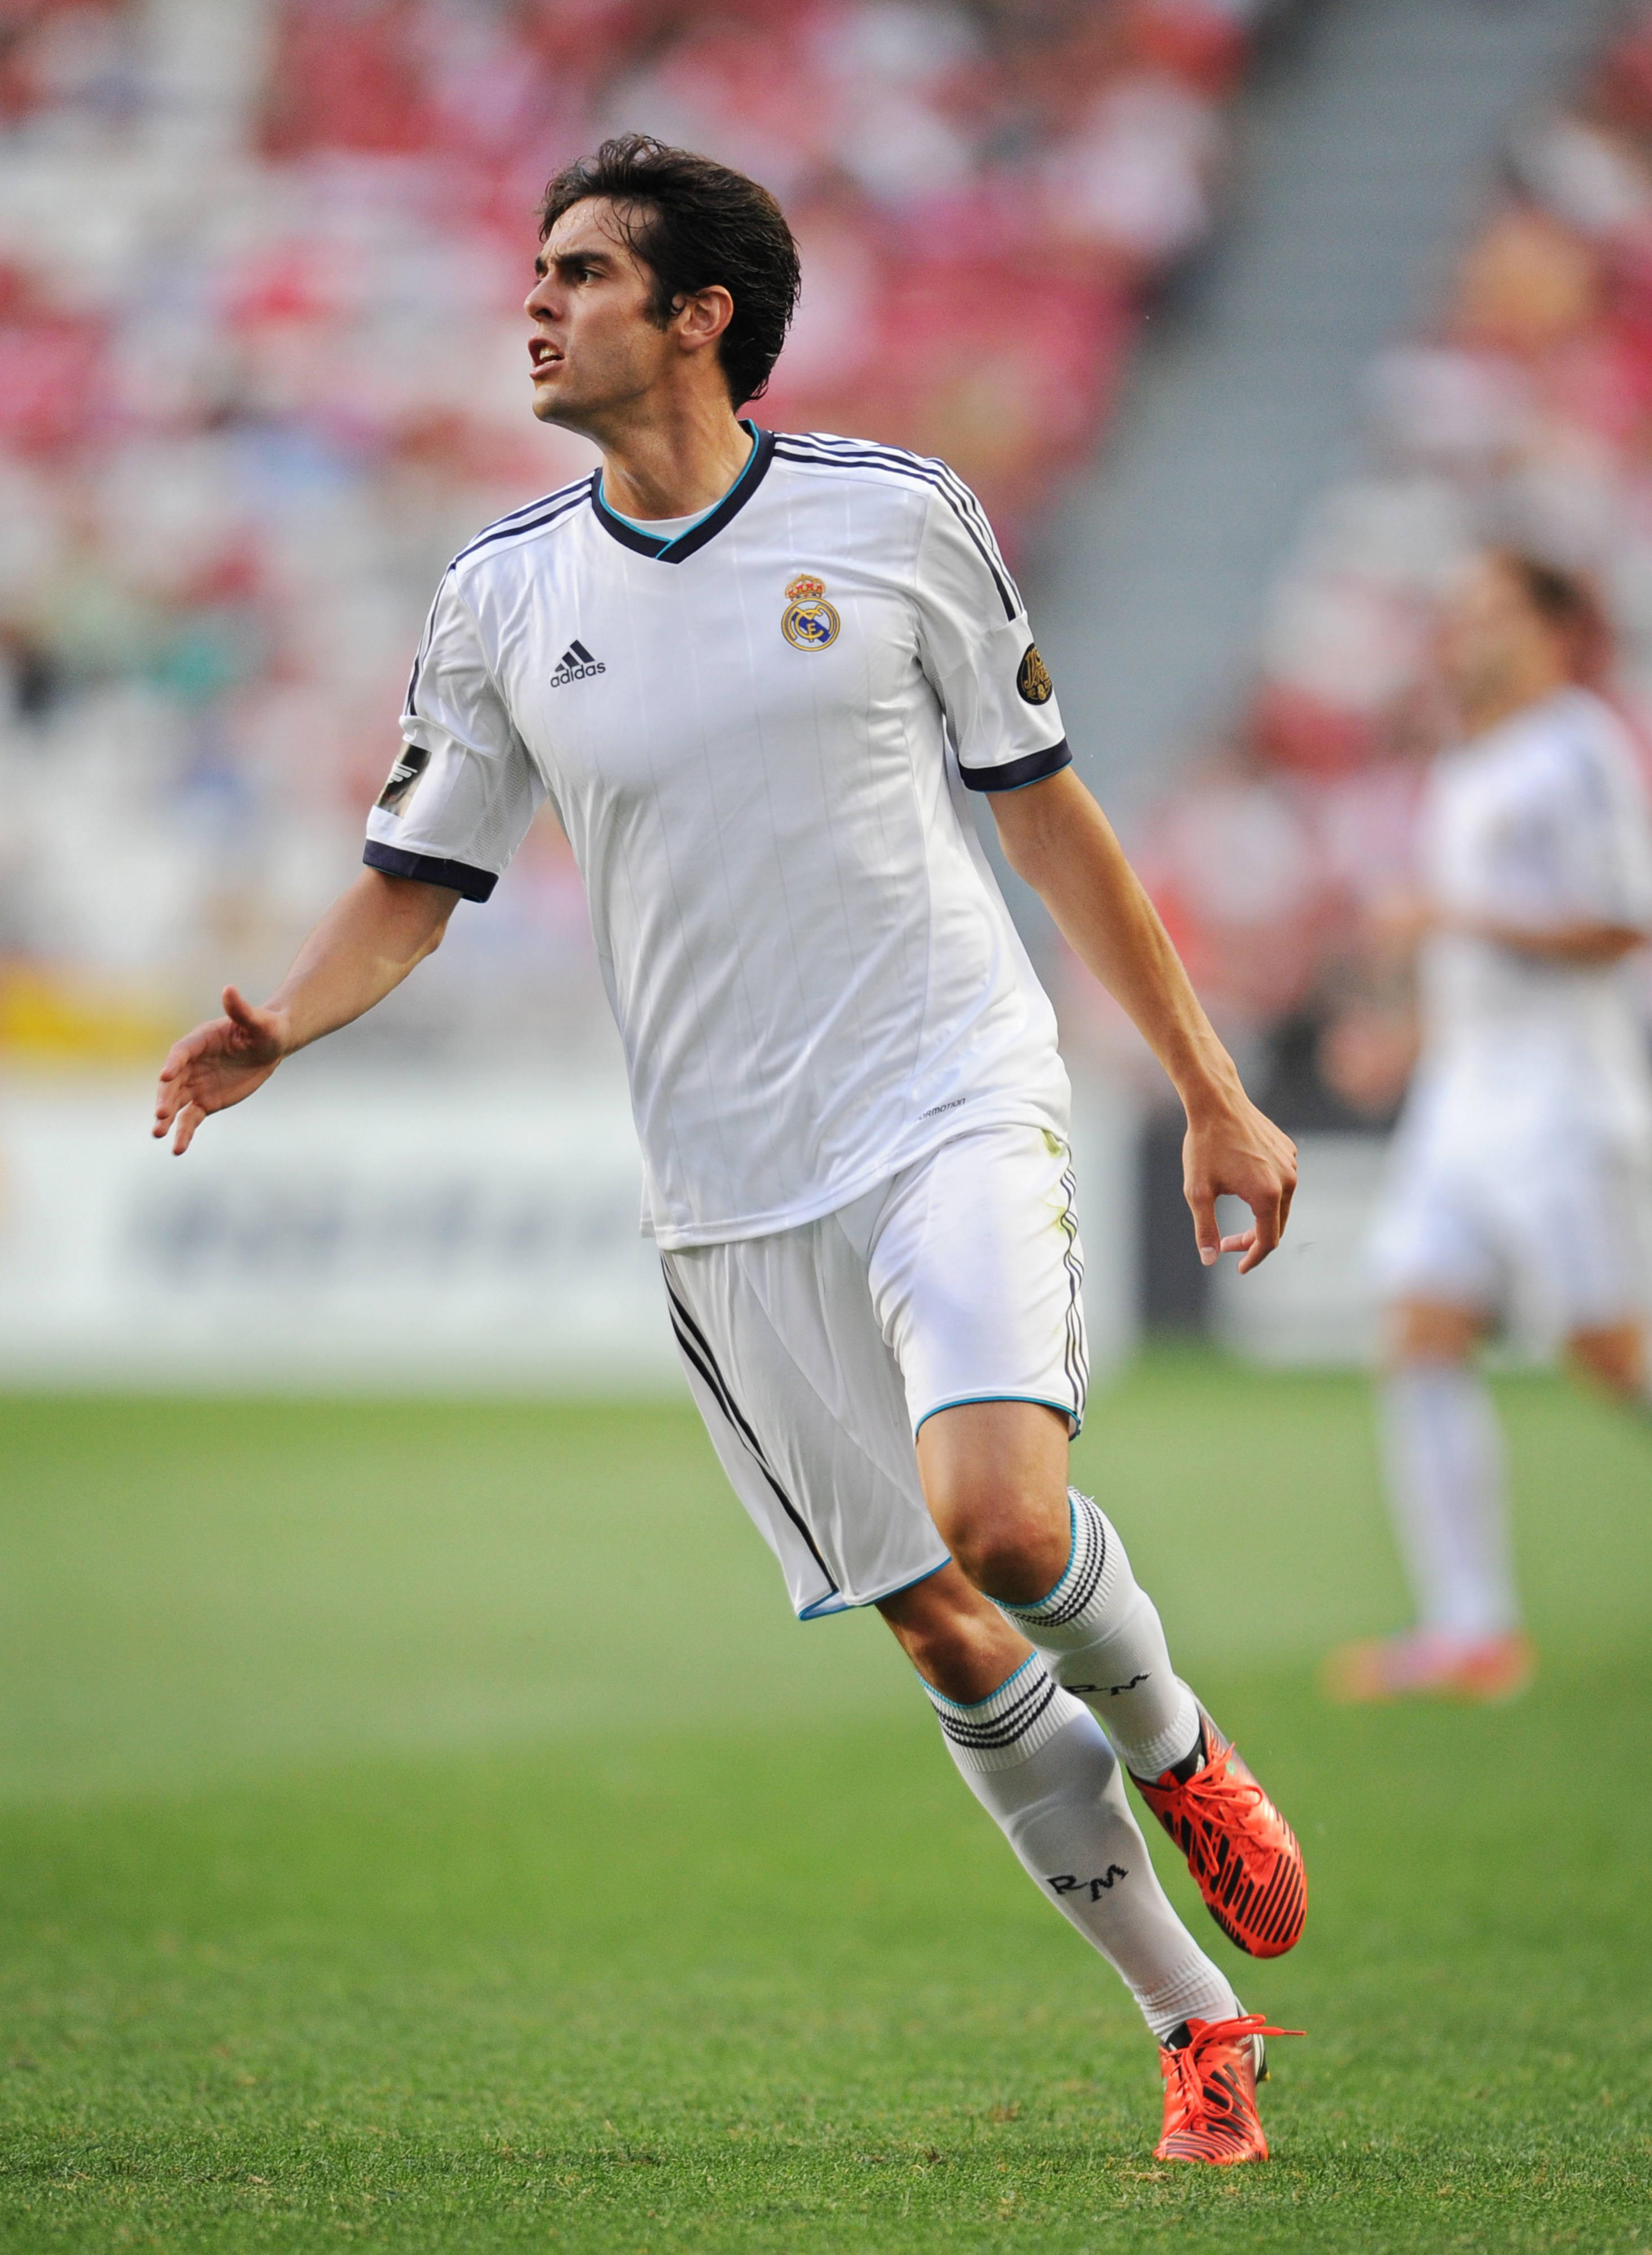 LISBON, PORTUGAL - JULY 27: Kaka of Real Madrid reacts during the Eusebio Cup match between Benfica and Real Madrid at Estadio da Luz on July 27, 2012 in Lisbon, Portugal.  (Photo by Jasper Juinen/Getty Images)